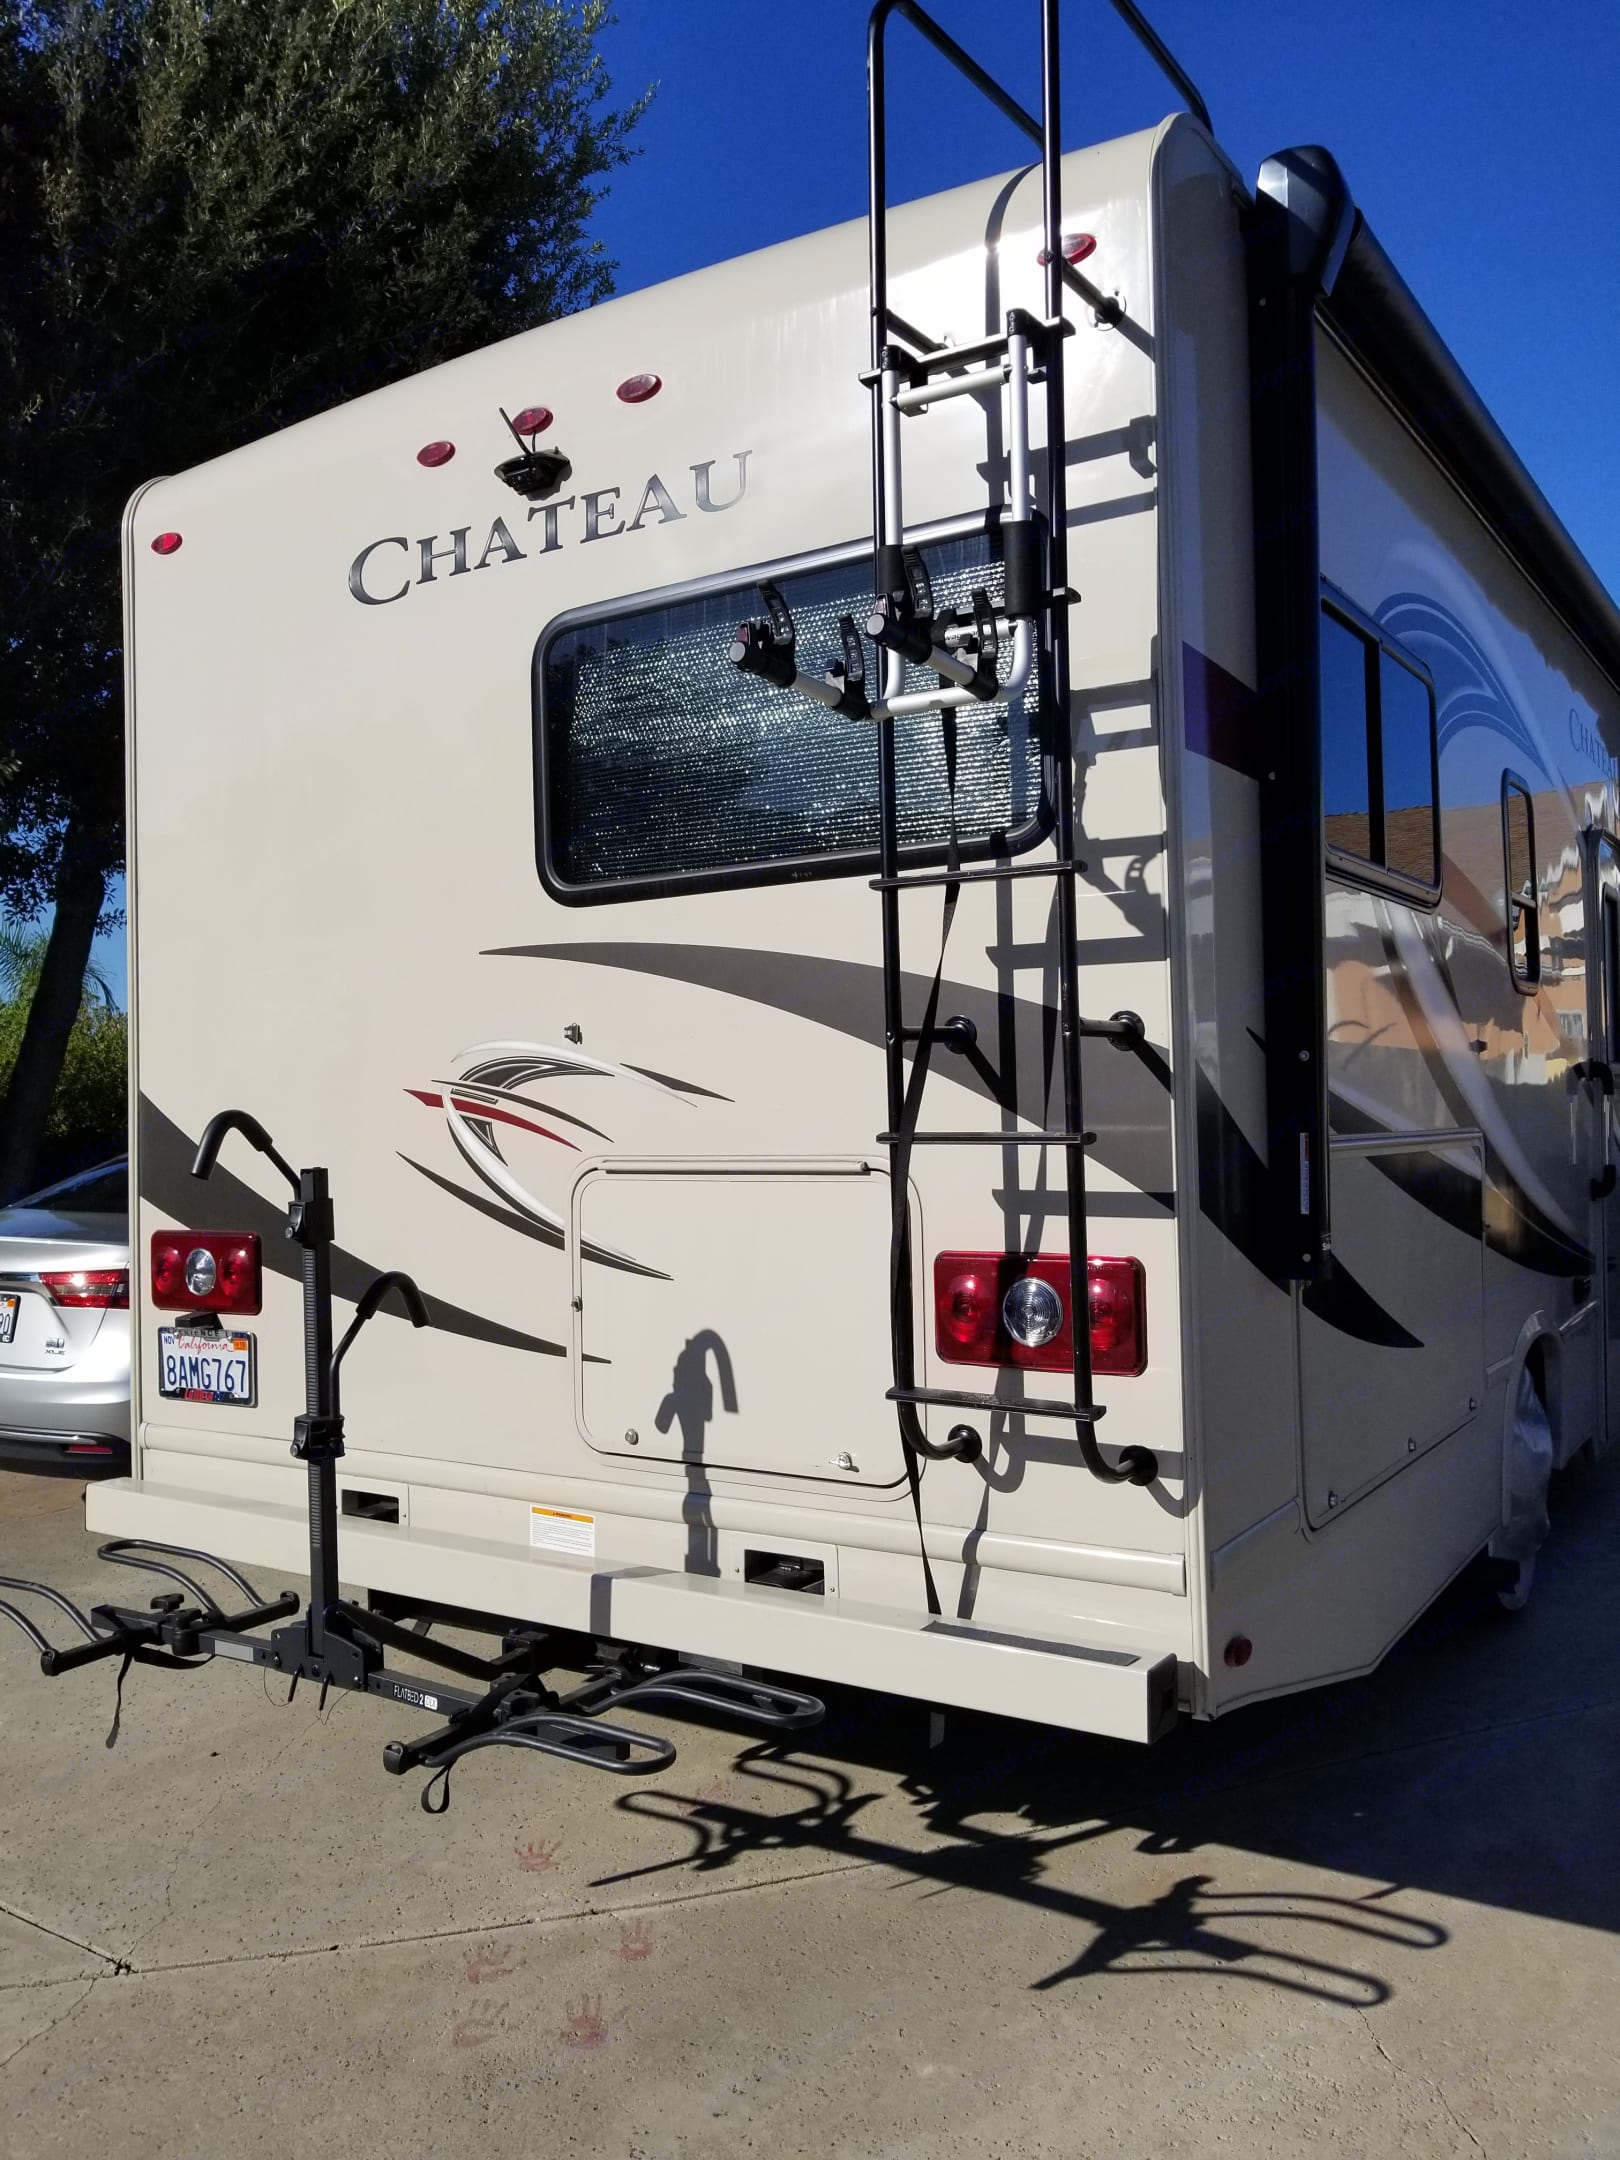 Free options for the two bike racks - one for flatbed bike rack holding up to two adult bikes and one ladder bike rack to hold smaller bike (i.e kid bike). I can install the bike racks upon your request.  Have fun bike riding wherever you go :). Thor Motor Coach Chateau 2018